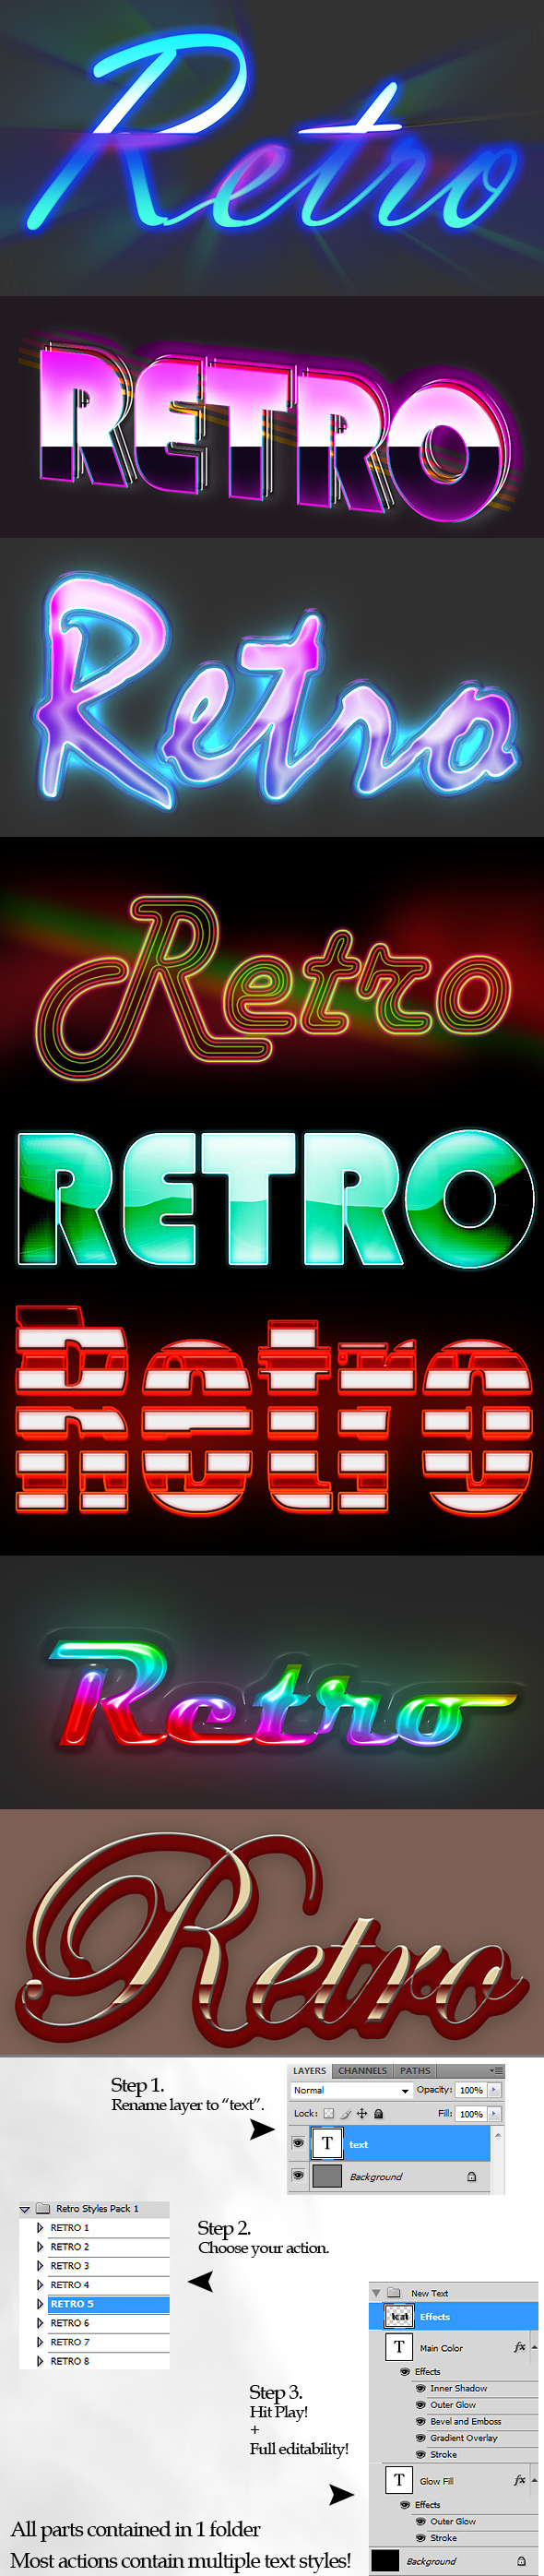 Retro Style Text Actions - Photoshop Add-ons